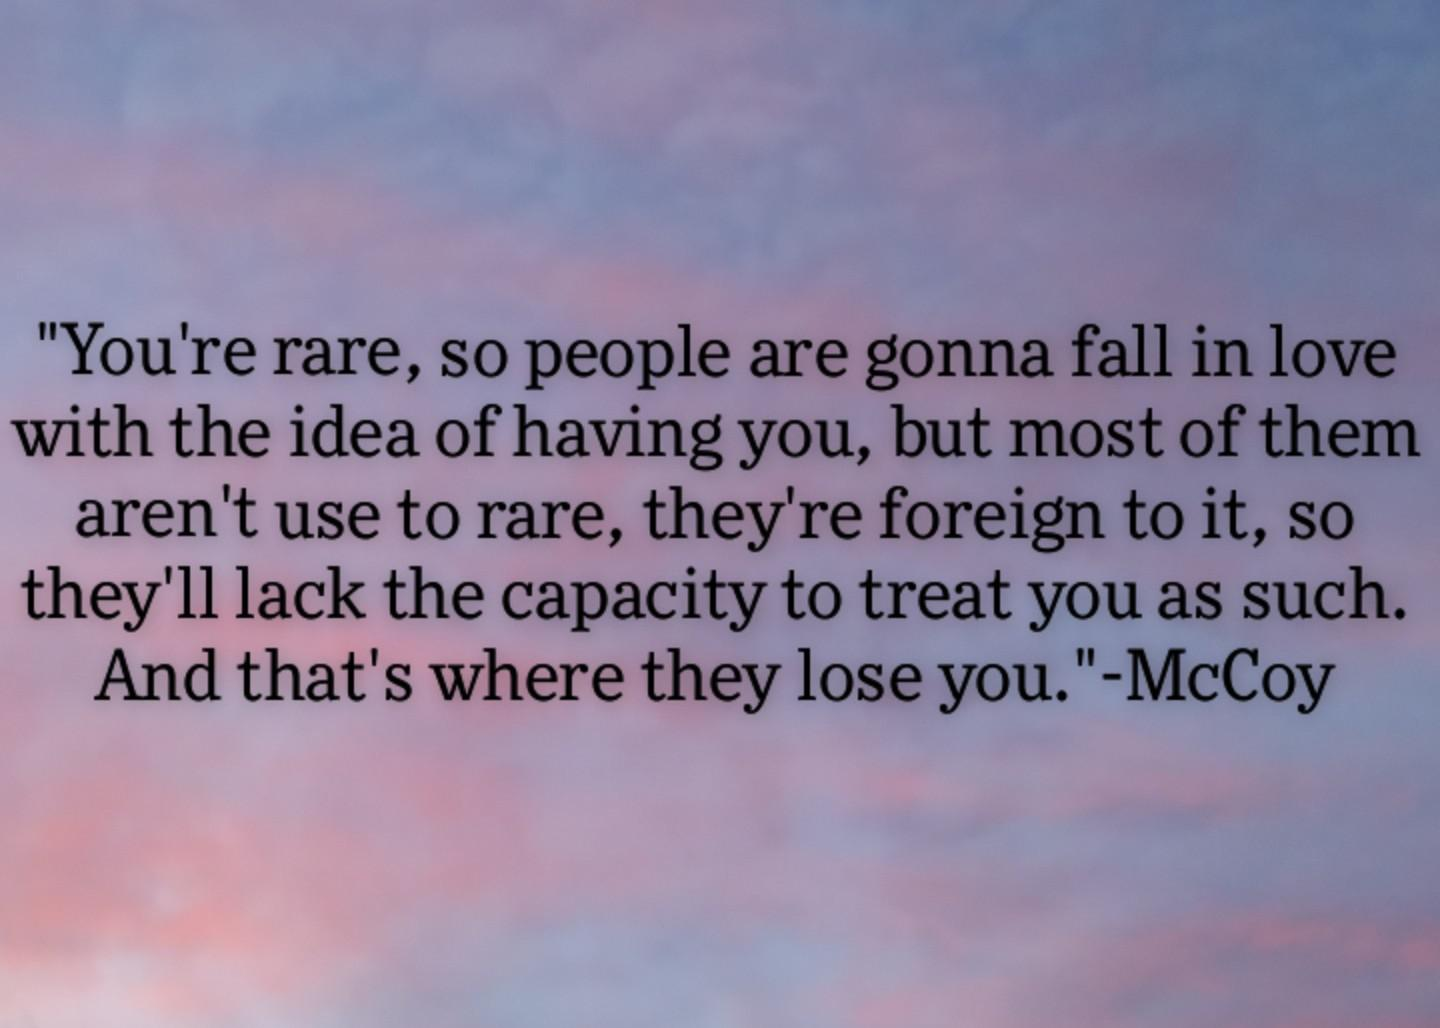 """You're rare, so people are gonna fall in love with the idea of having you, but most of them aren't use to rare, they're foreign to it, so they'll lack the capacity to treat you as such. And that's where they lose you.""-McCoy (1440×1028)"